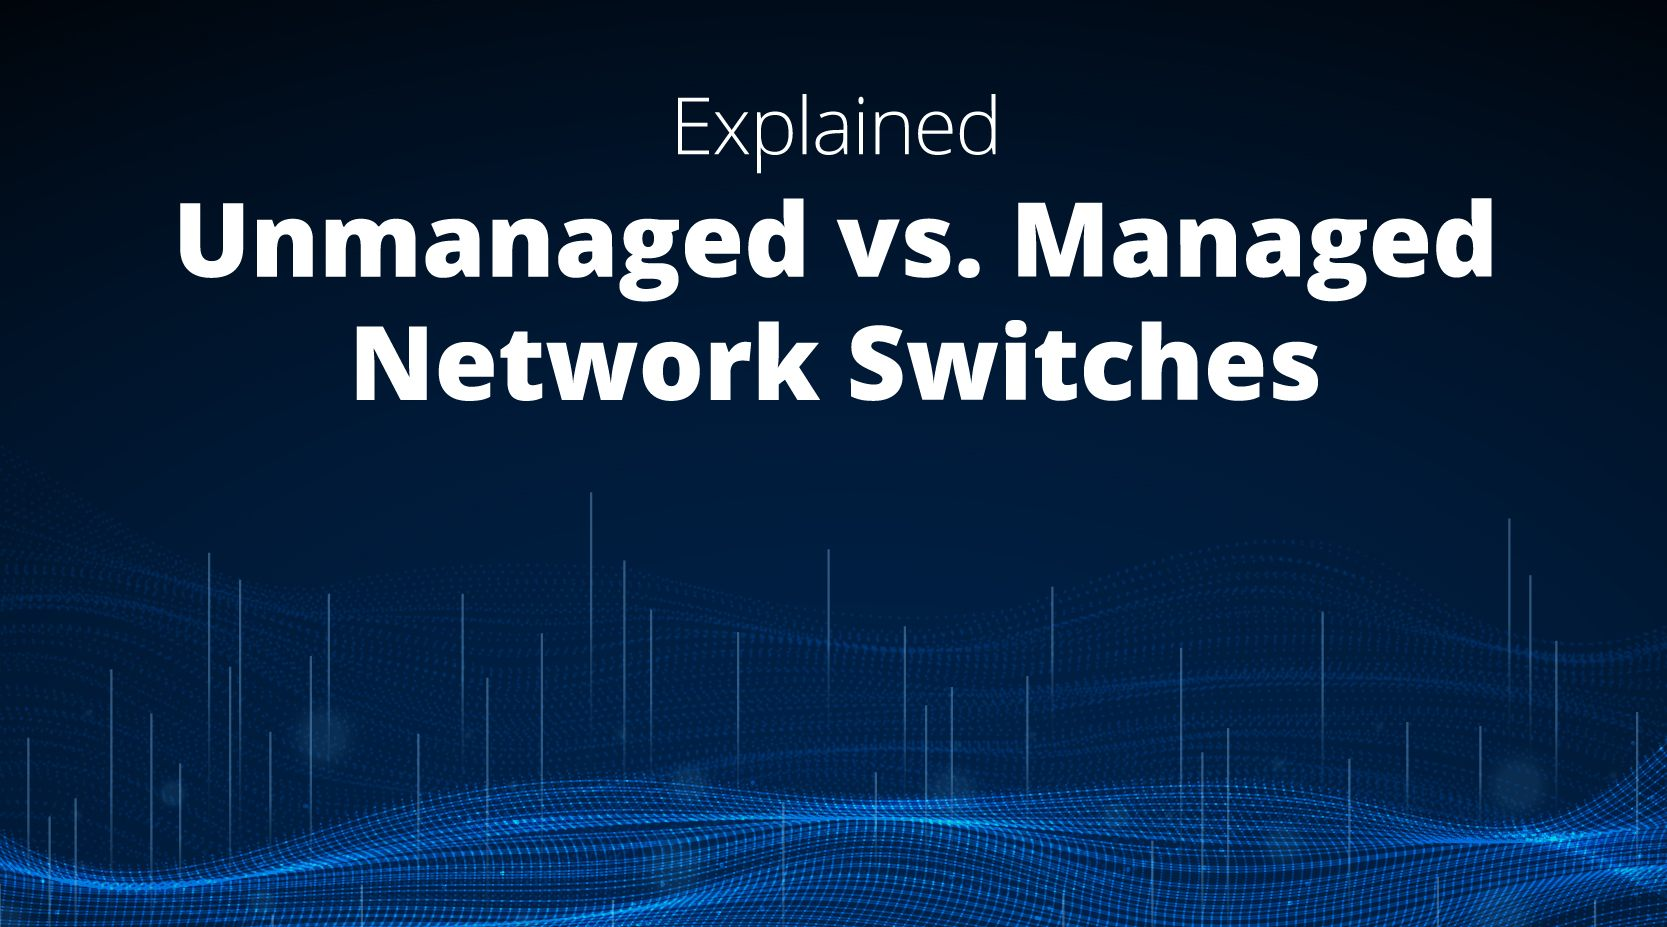 Managed vs. Unmanaged Switch